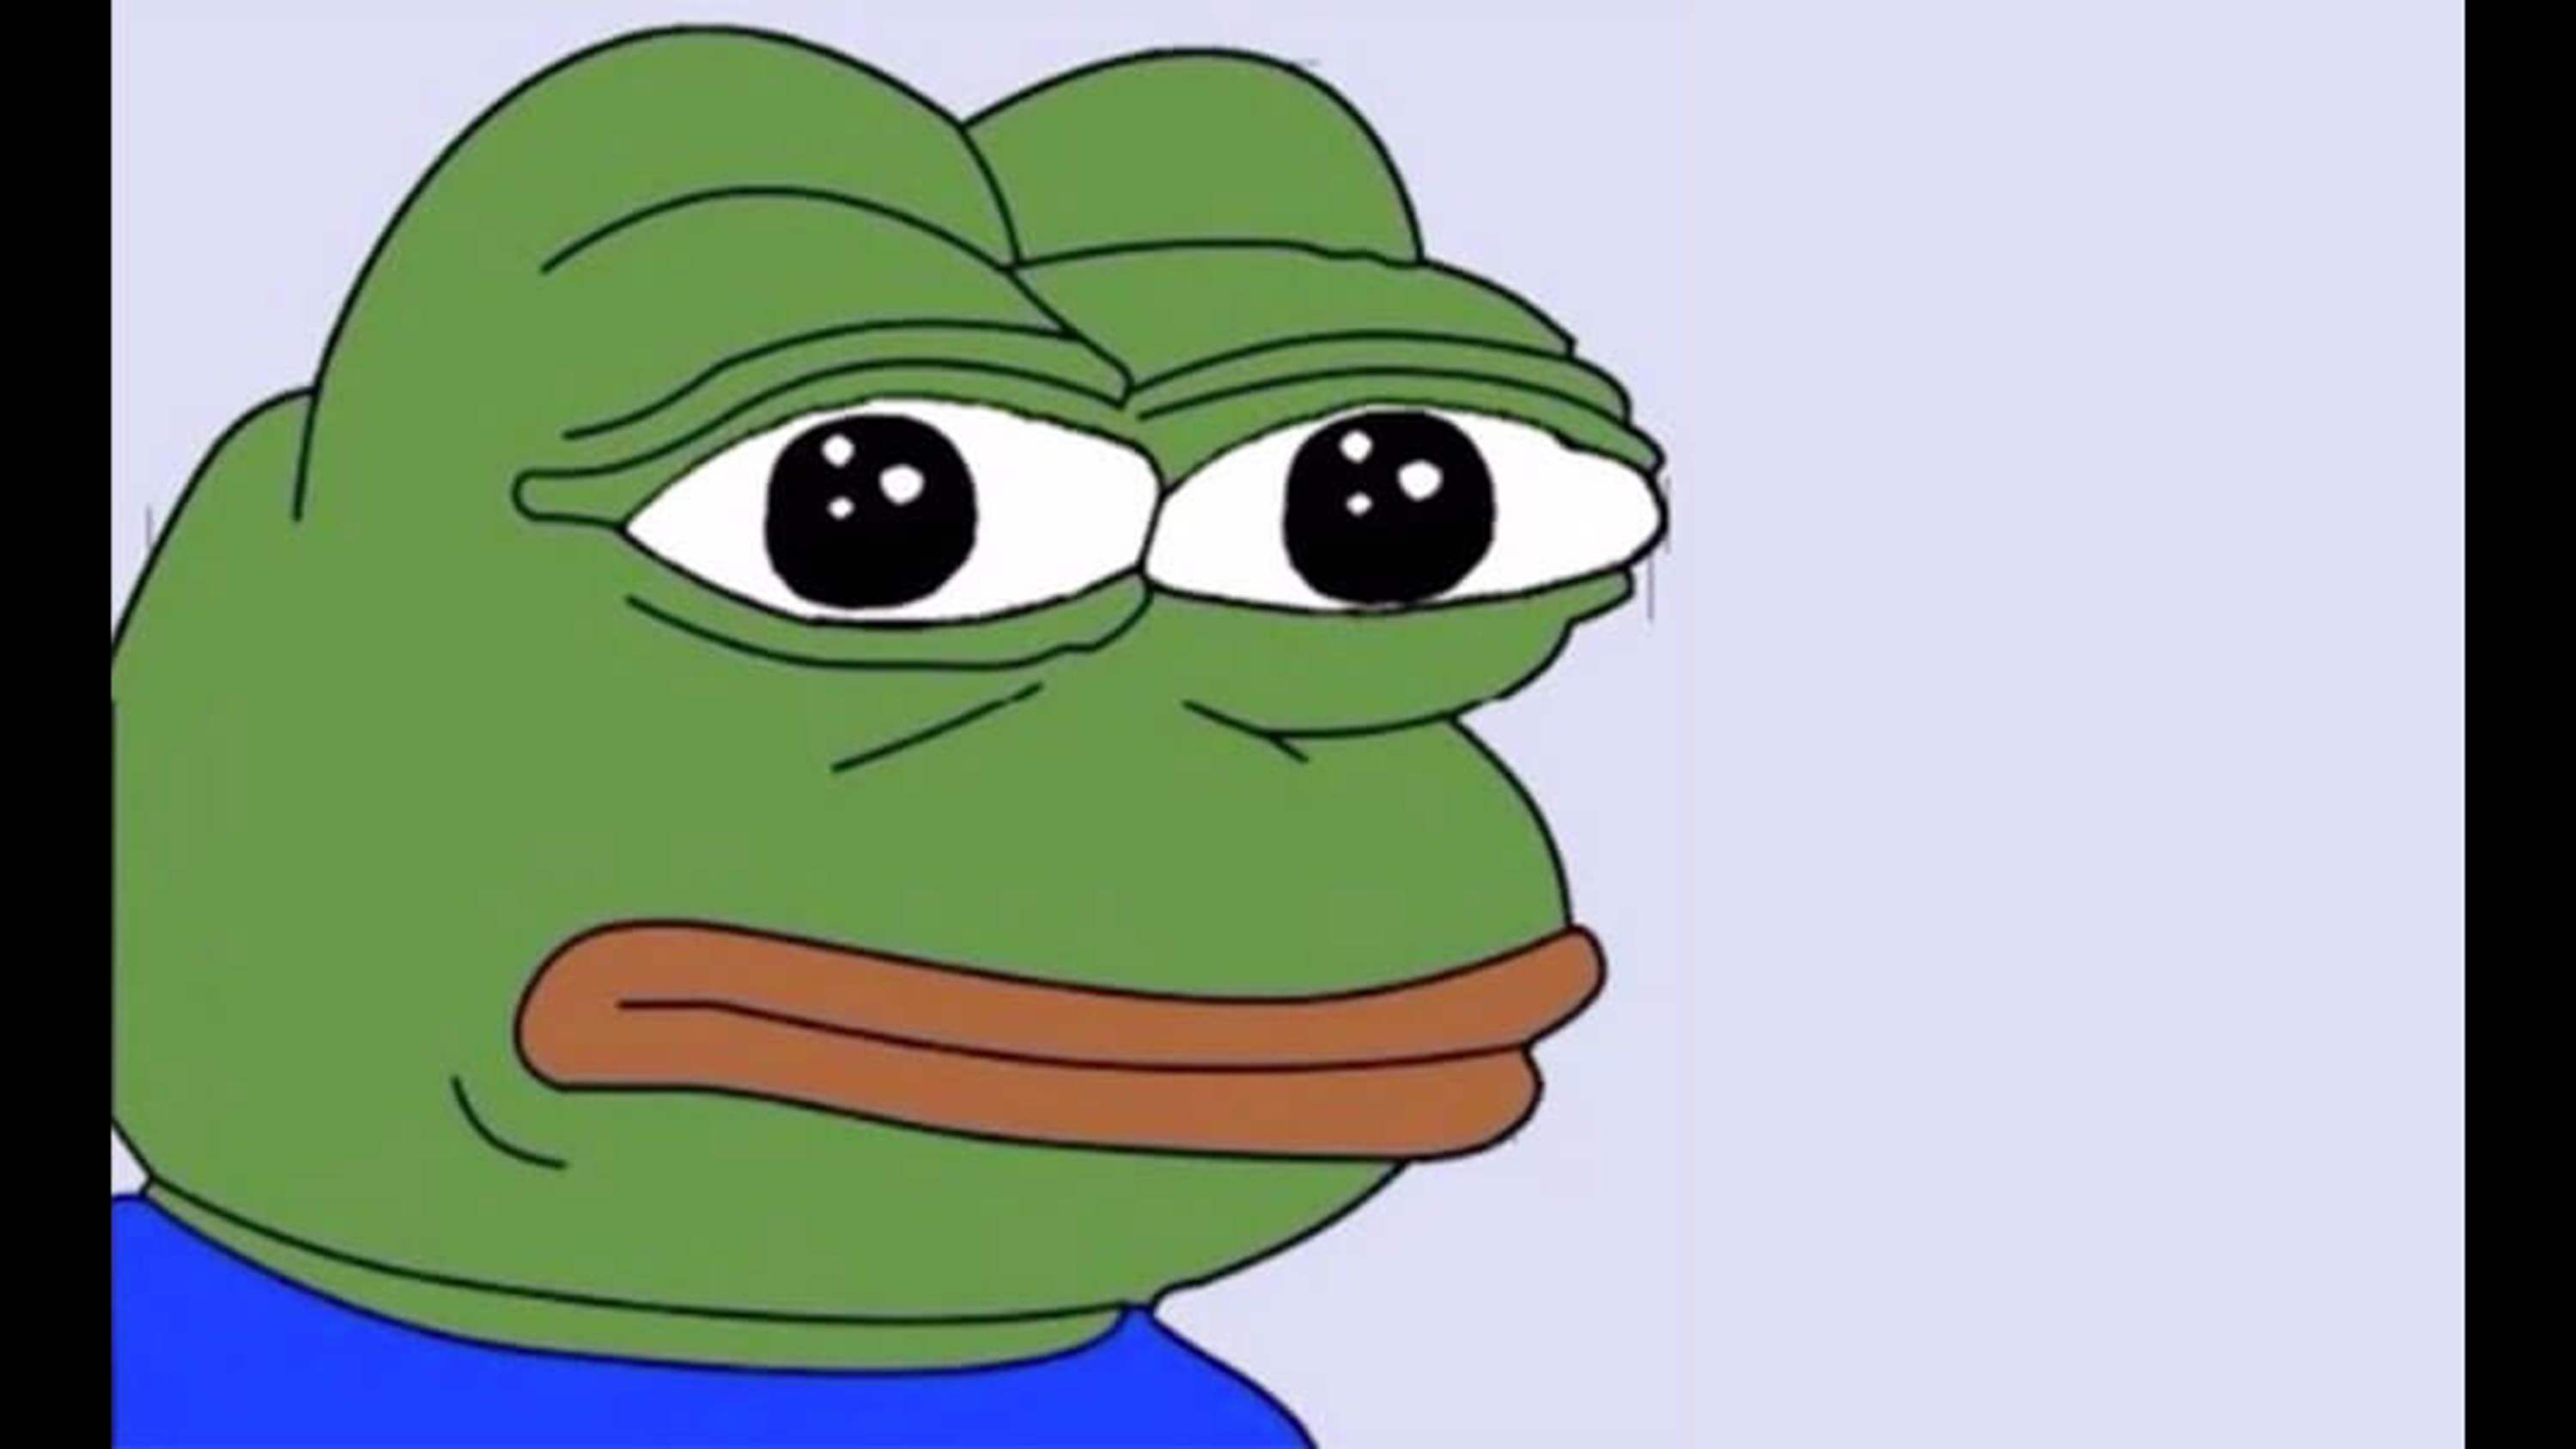 pepe the frog designated symbol by adl cnn